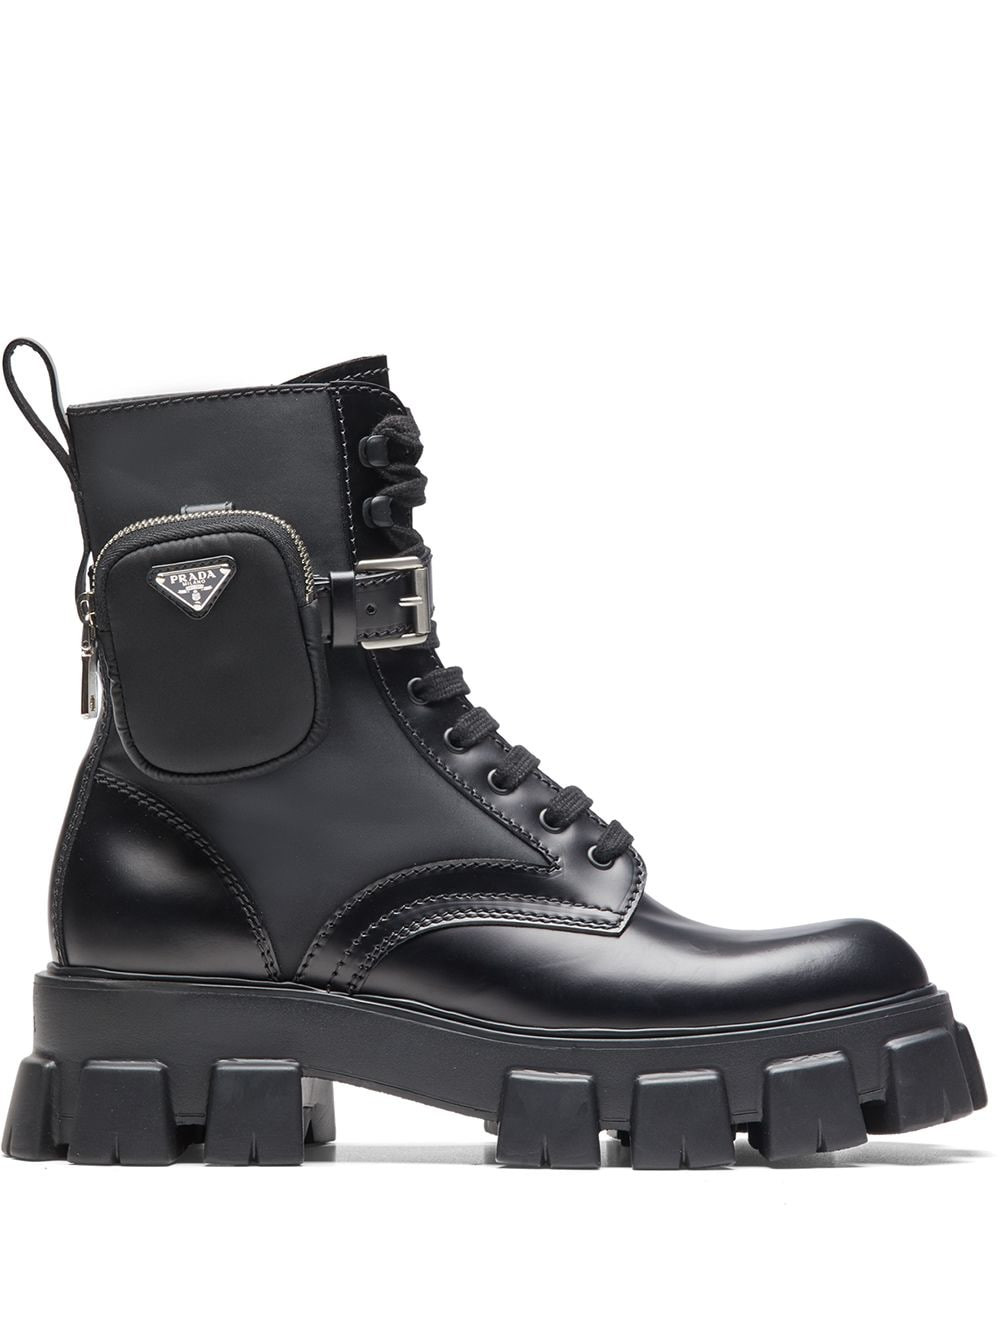 Prada ankle pouch combat boots image via Farfetch website